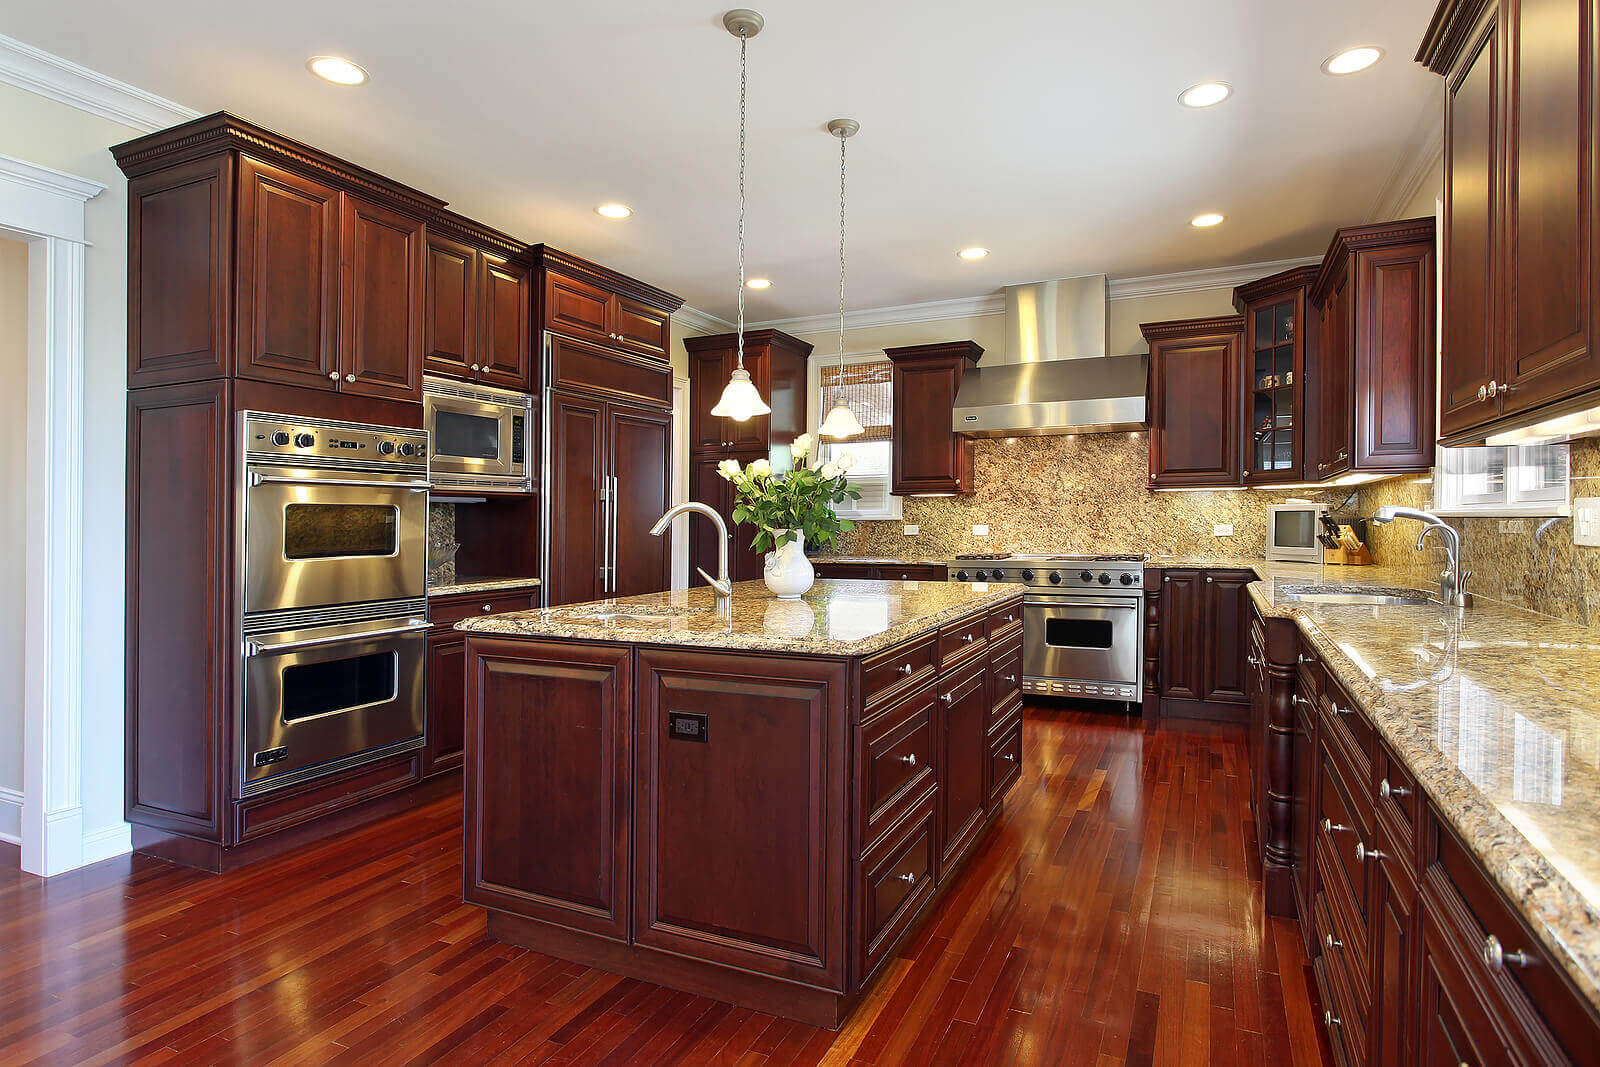 This elegant contemporary kitchen takes its color inspiration from nature. It features brown cherry cabinets, cream granite backsplash, crisp white walls and ceiling, and a stainless steel cooktop well positioned in between the cabinets